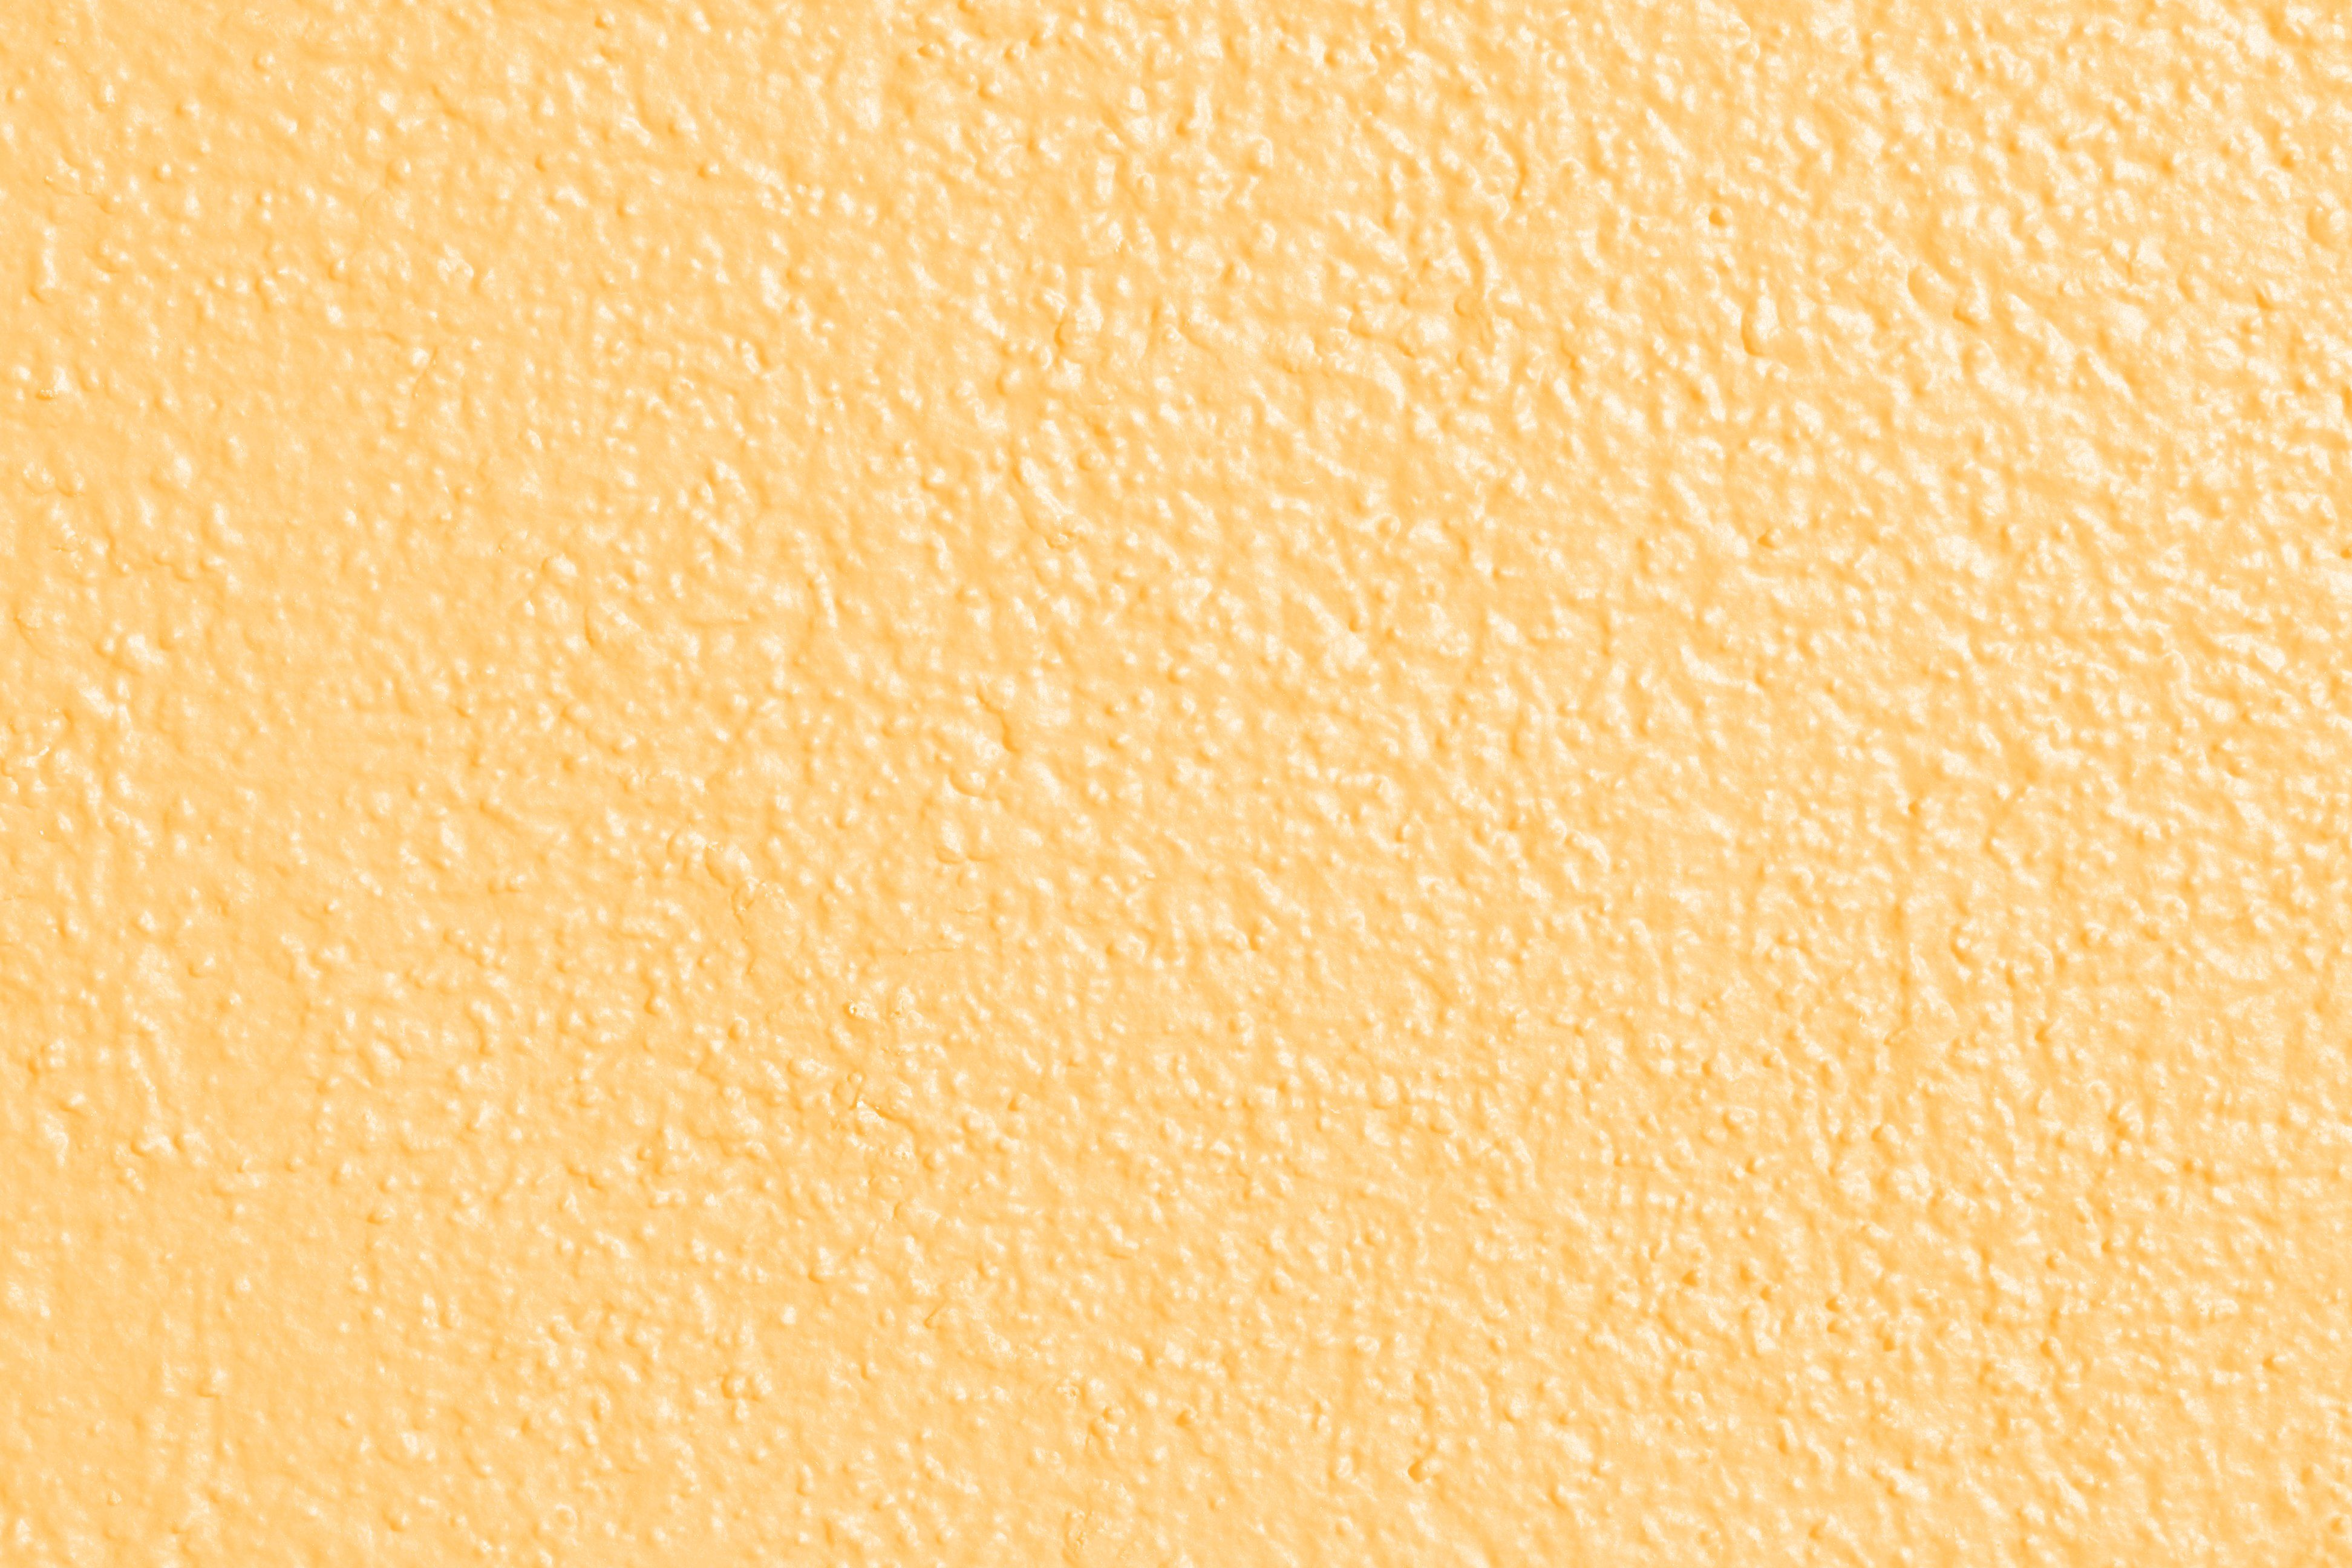 Peach or Light Orange Colored Painted Wall Texture | House ...